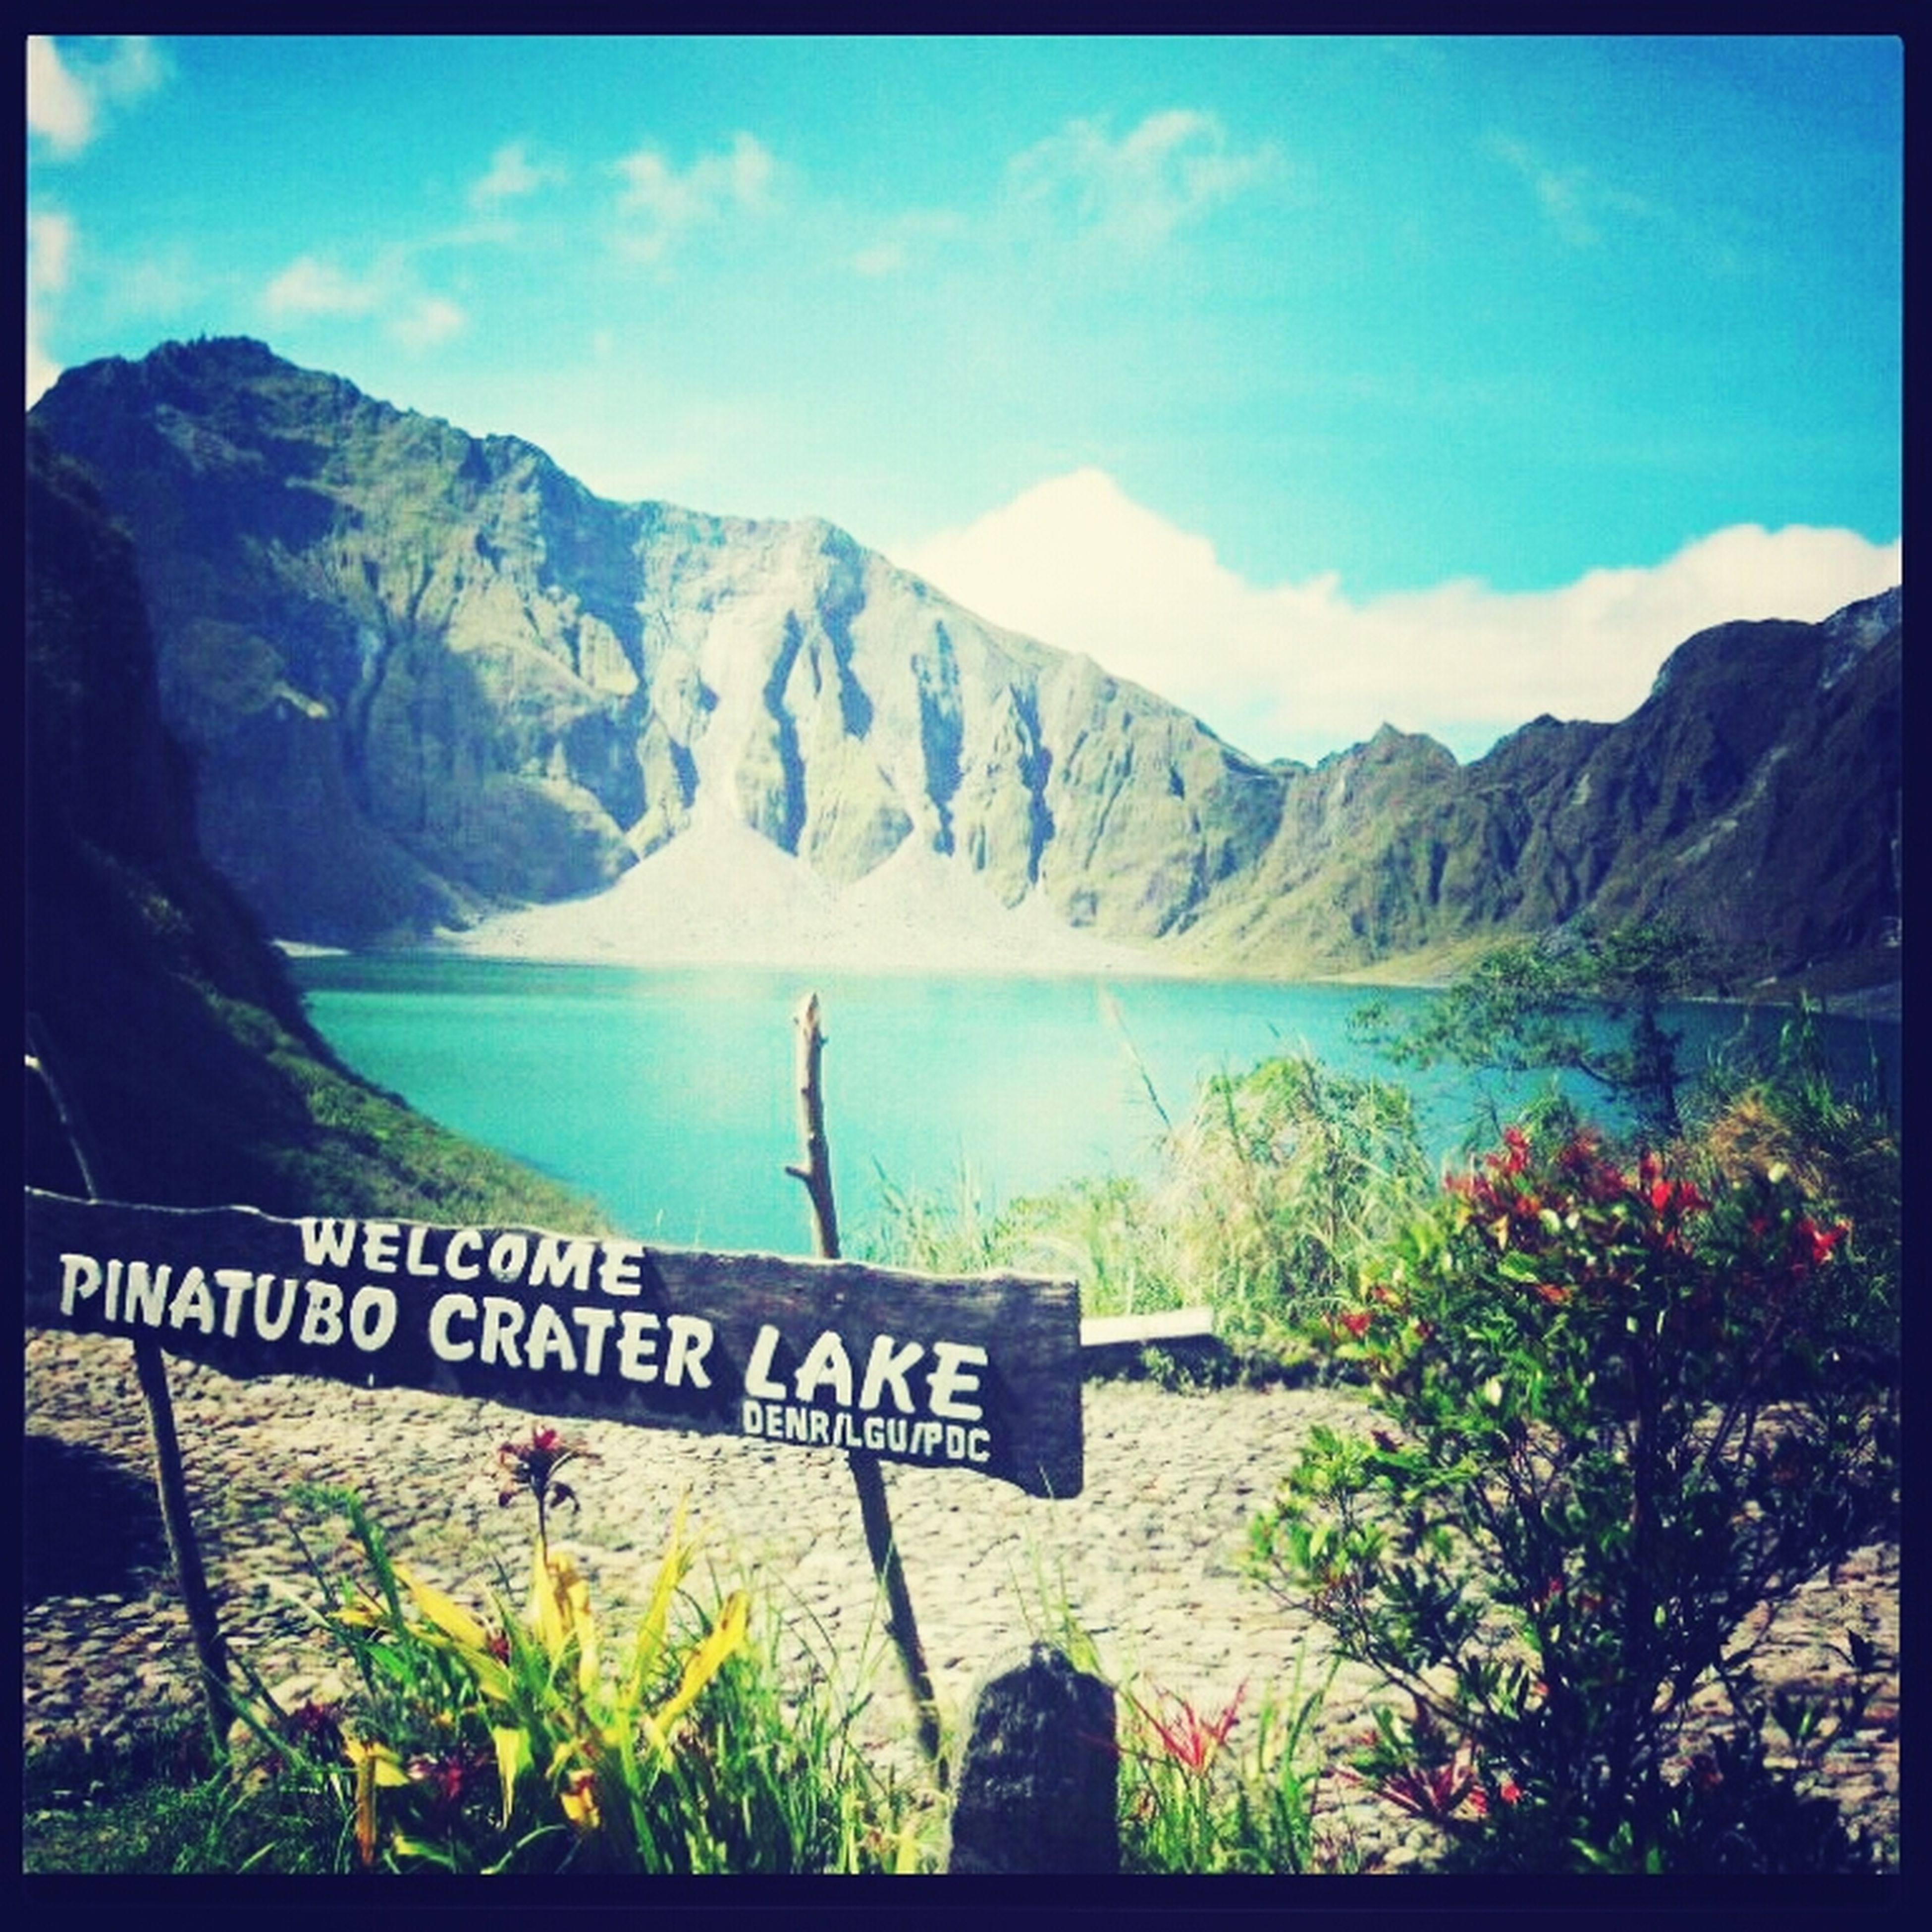 crater lake of mt pinatubo Enjoying Life